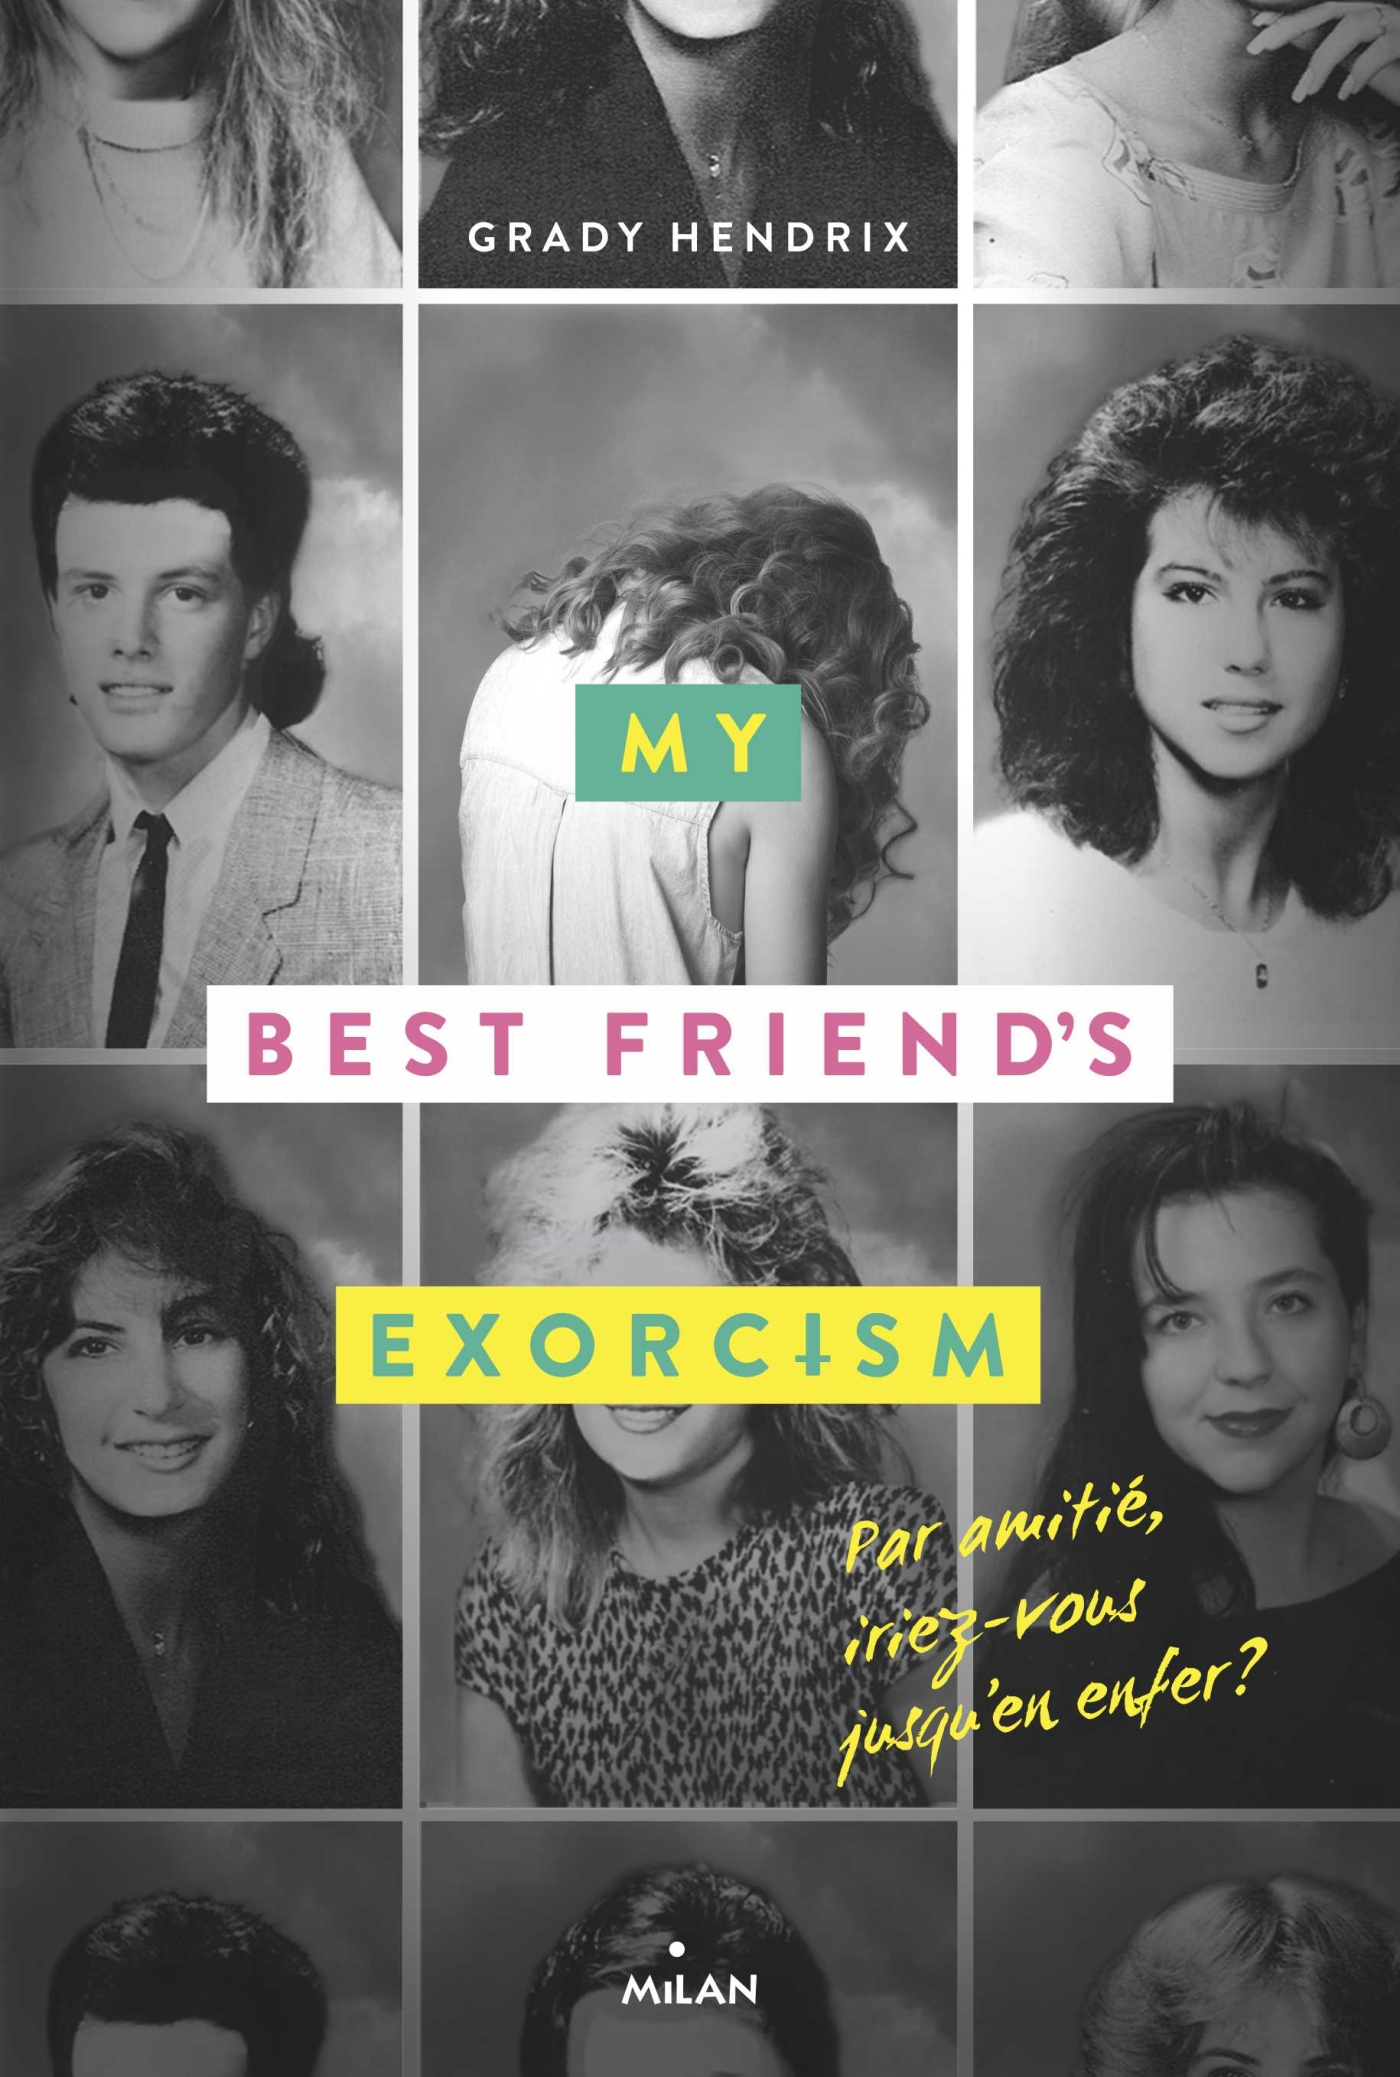 Image de l'article « My Best Friend's Exorcism de Grady Hendrix »